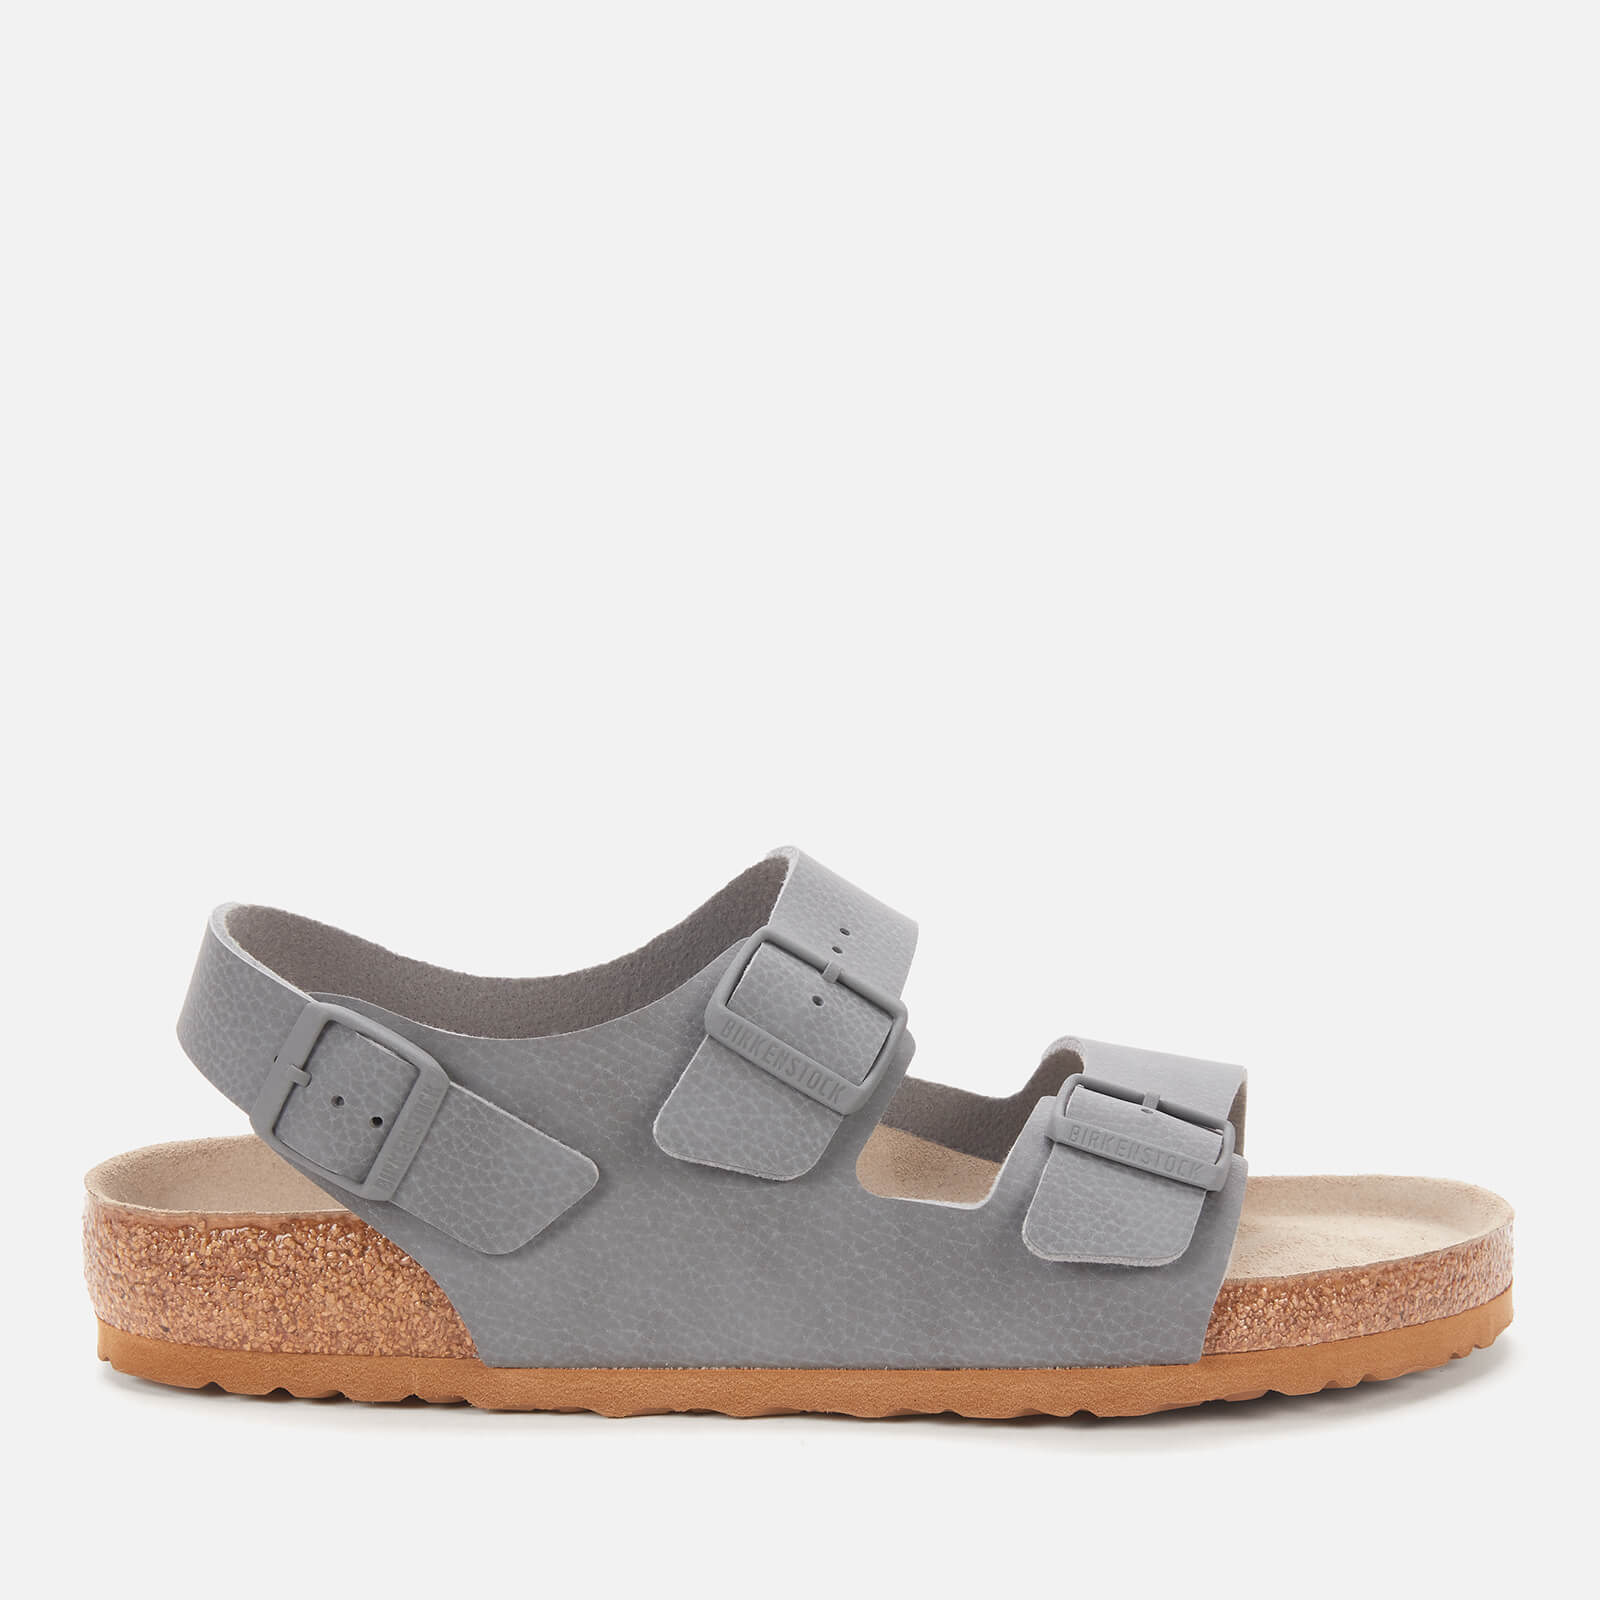 Click to view product details and reviews for Birkenstock Mens Milano Double Strap Sandals Desert Soil Grey Eu 40 Uk 7.